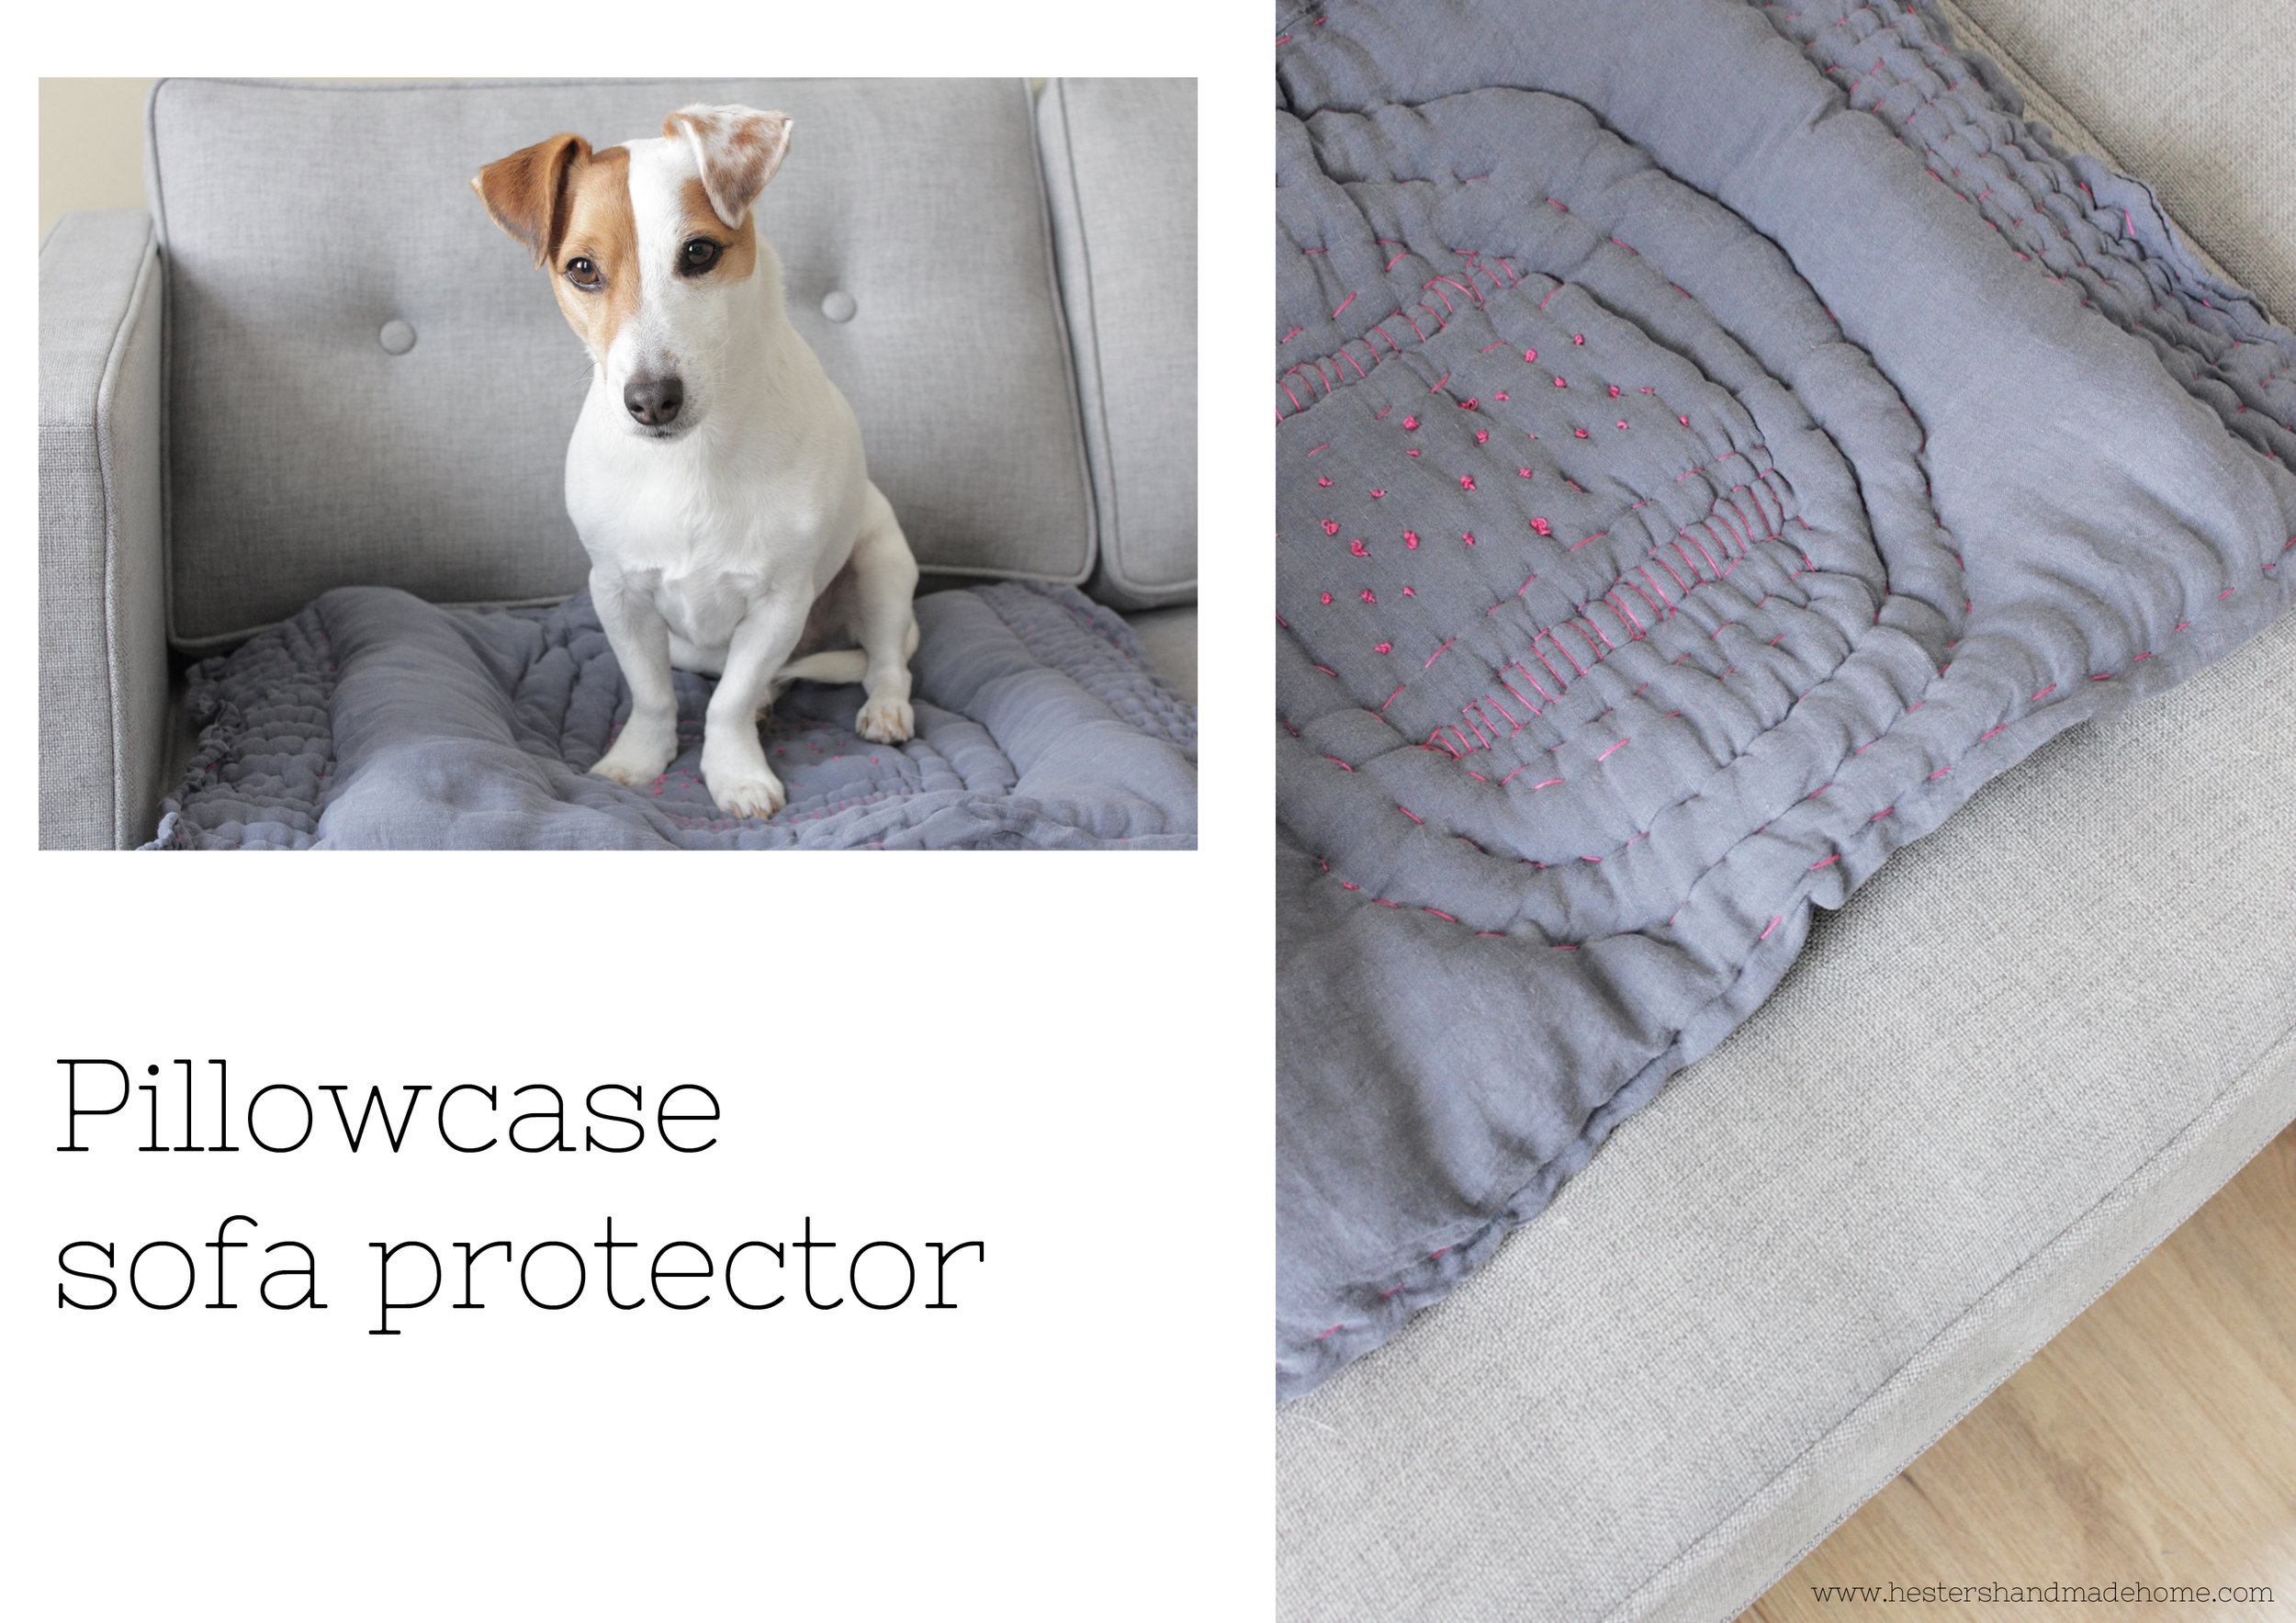 Protect your sofa from dog hair, made from a pillowcase, super easy tutorial by www.hestershandmadehome.com